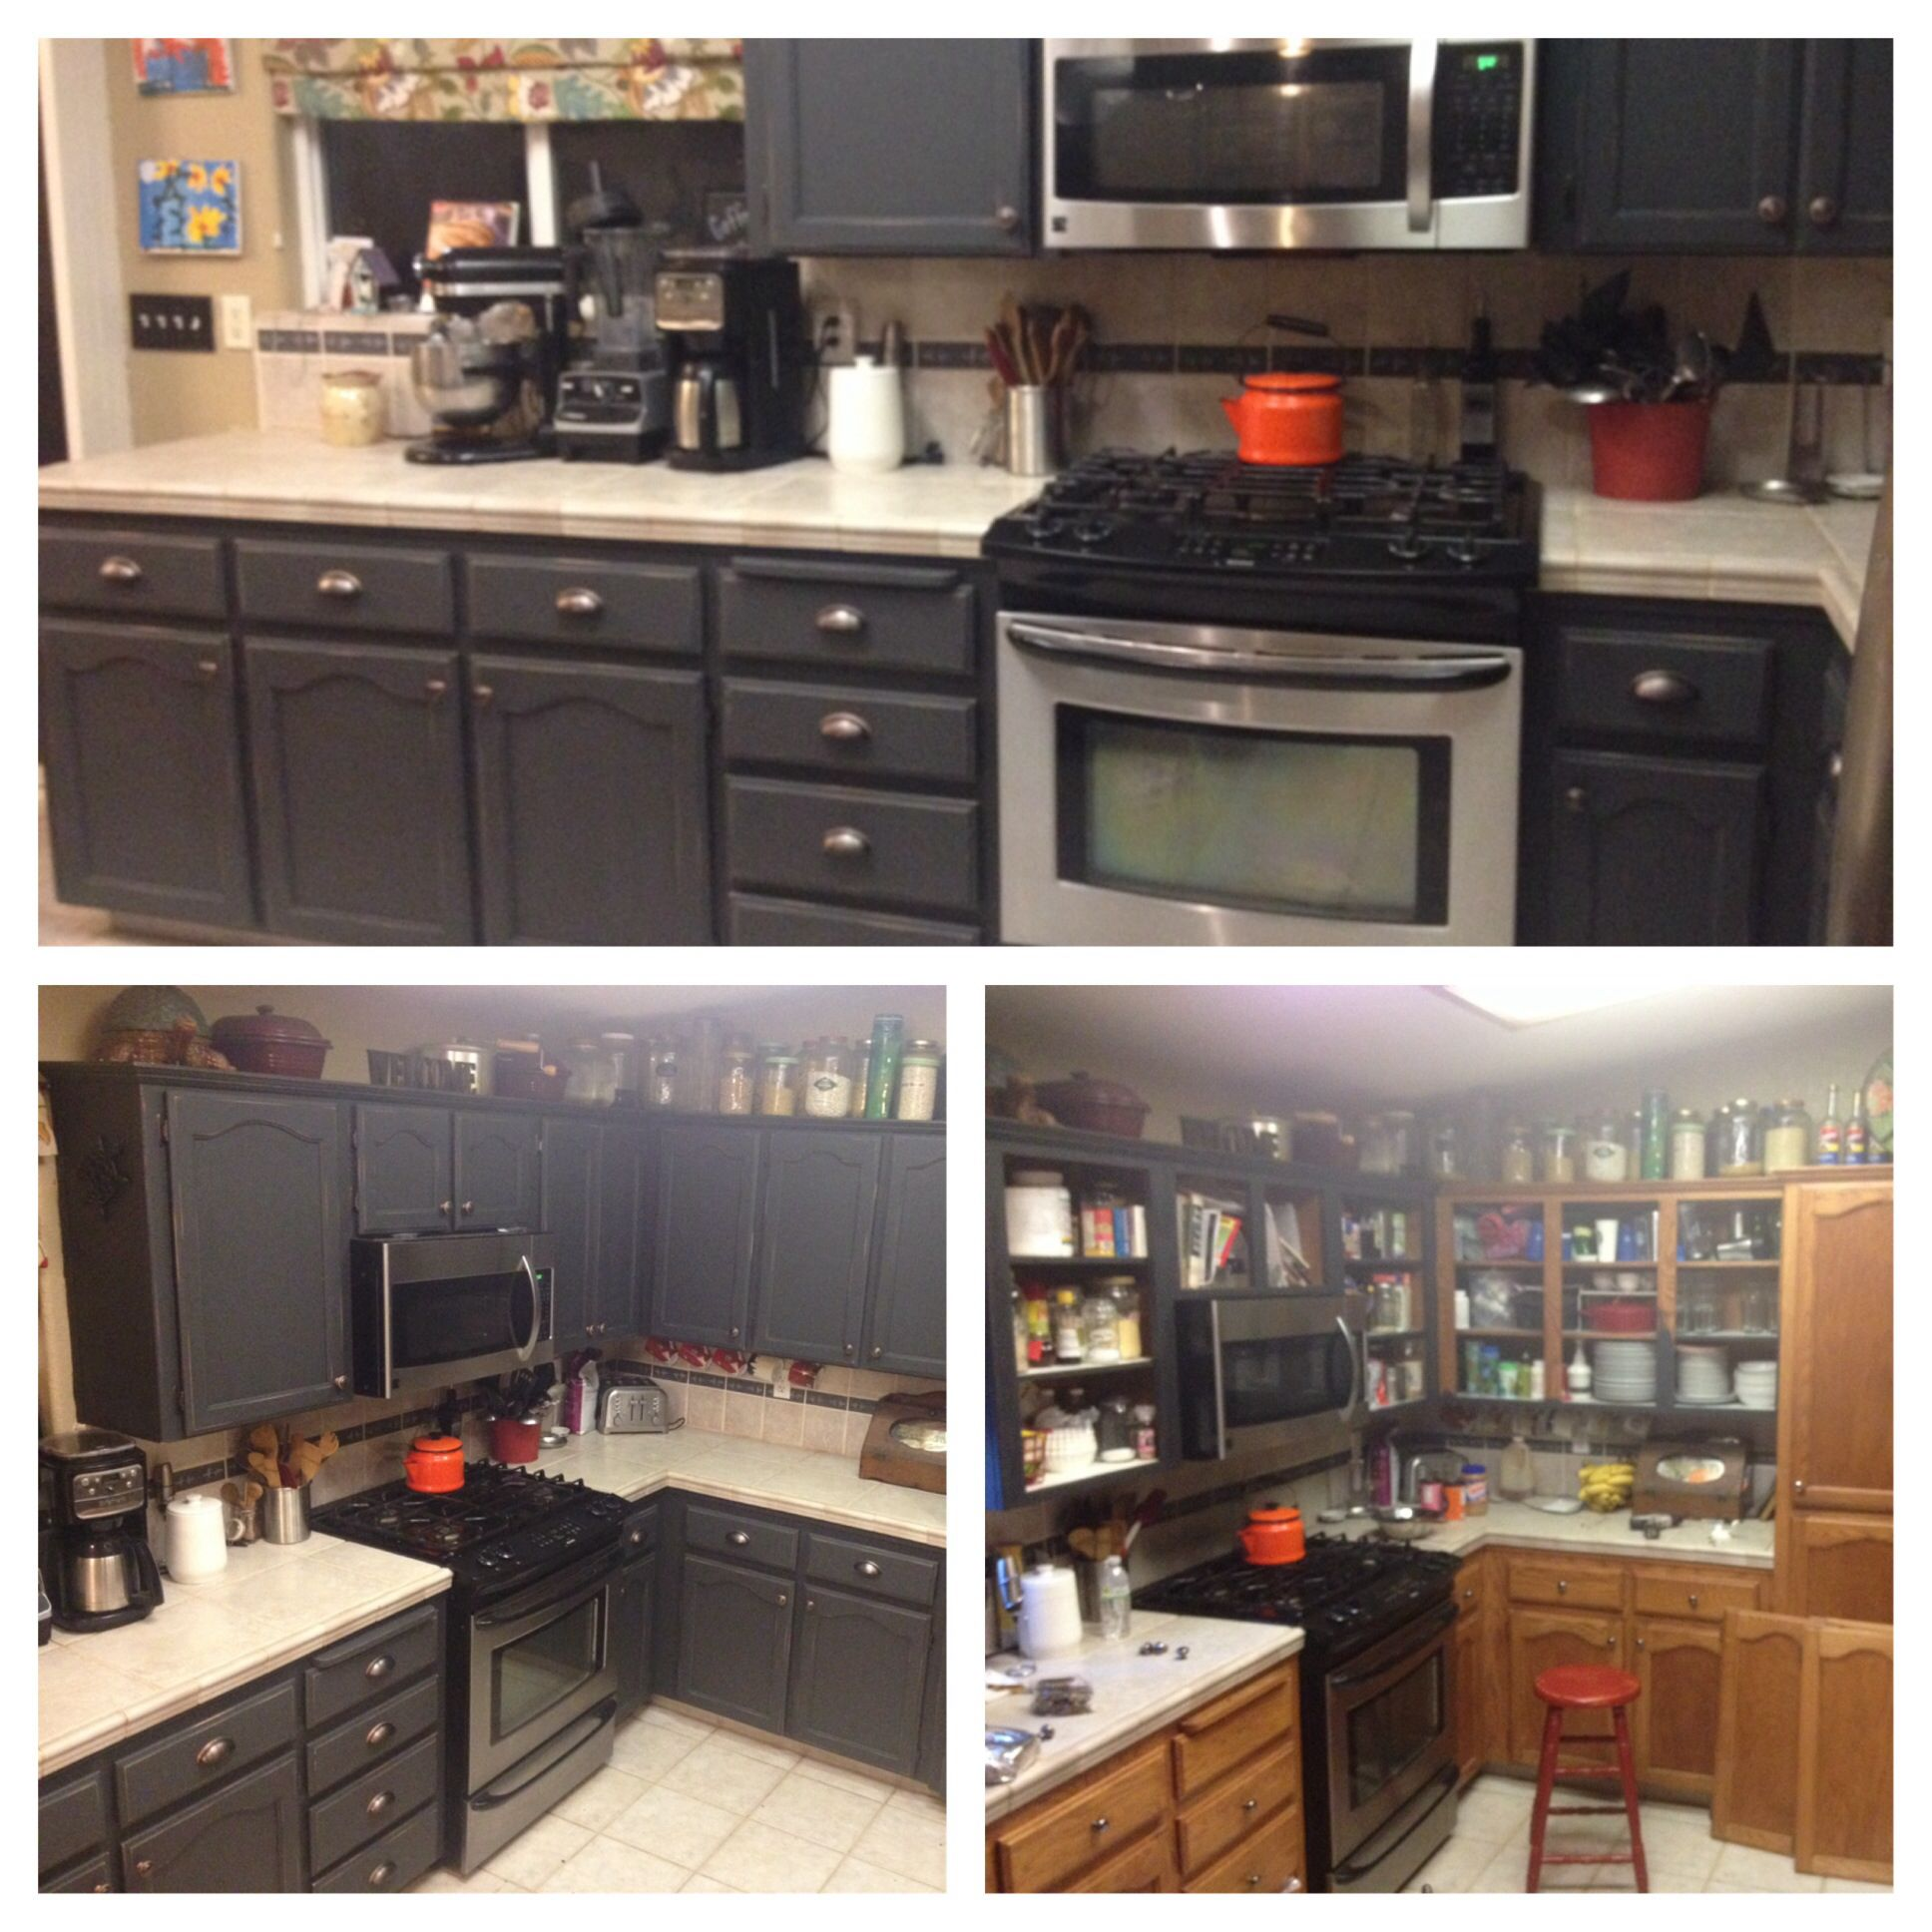 Sealing Painted Kitchen Cabinets: Extreme Makeover, Kitchen Edition! I Painted My Oak